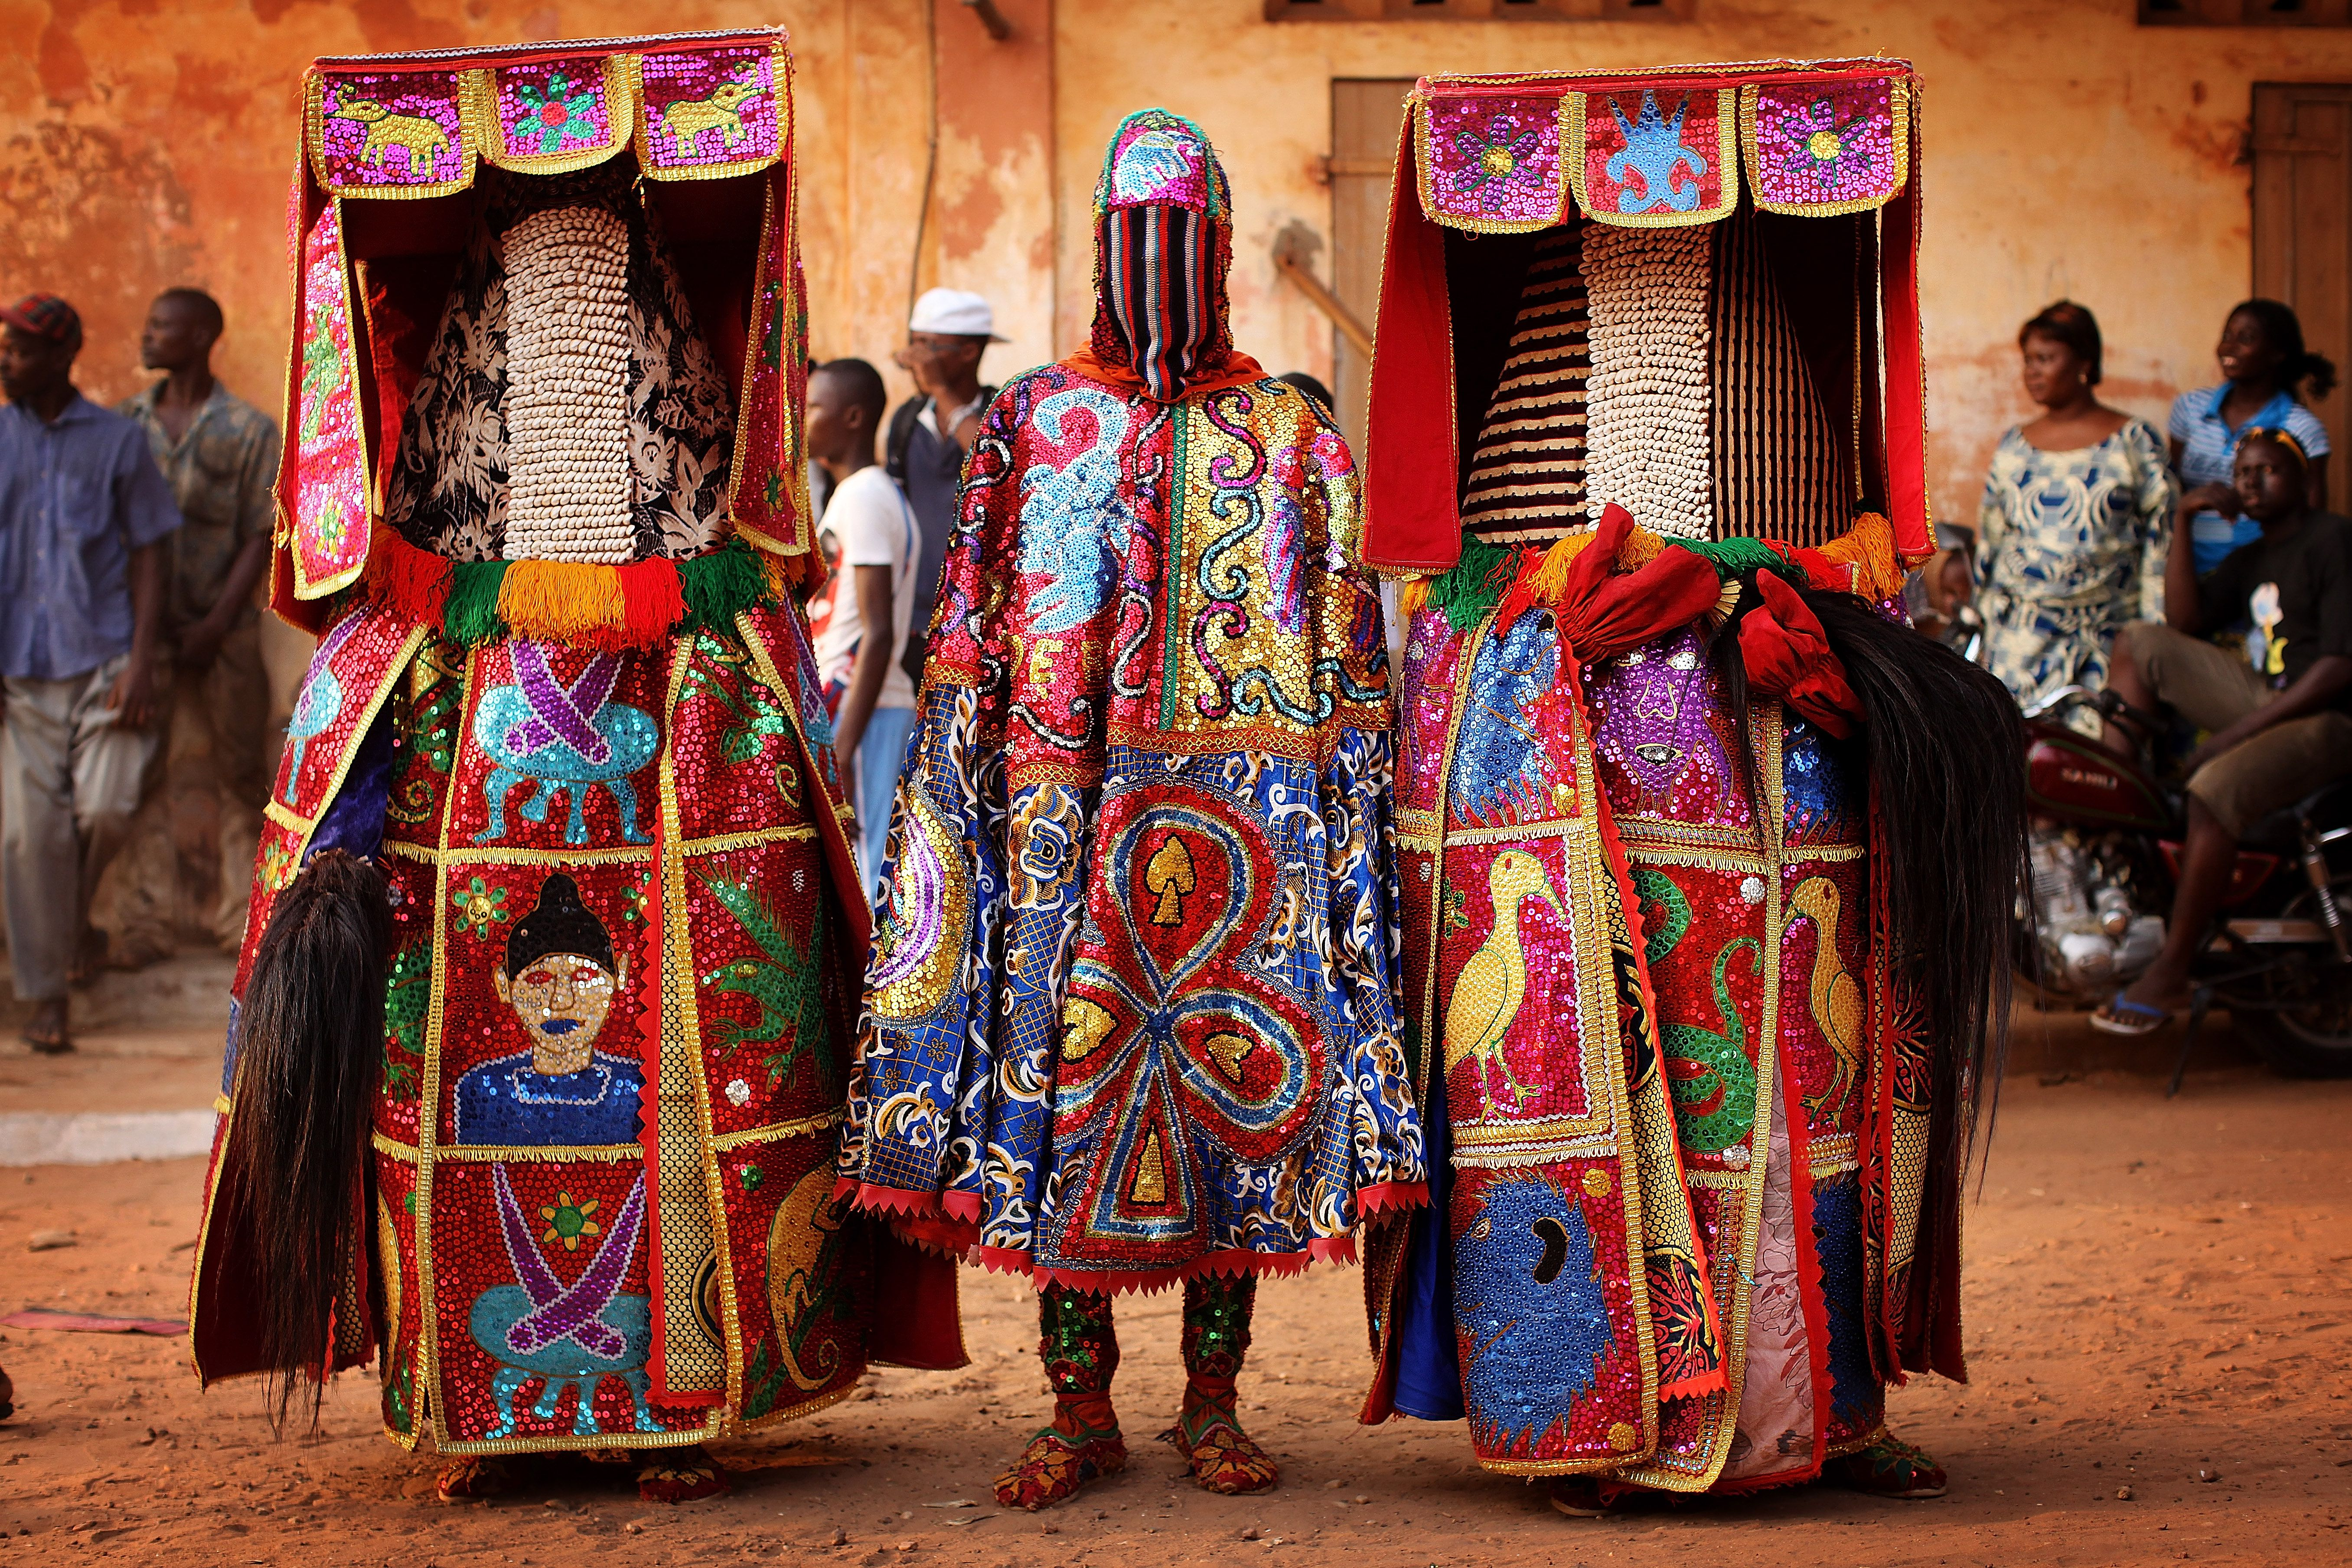 People dressed in ceremonial clothing at Annual Vodou Festival.